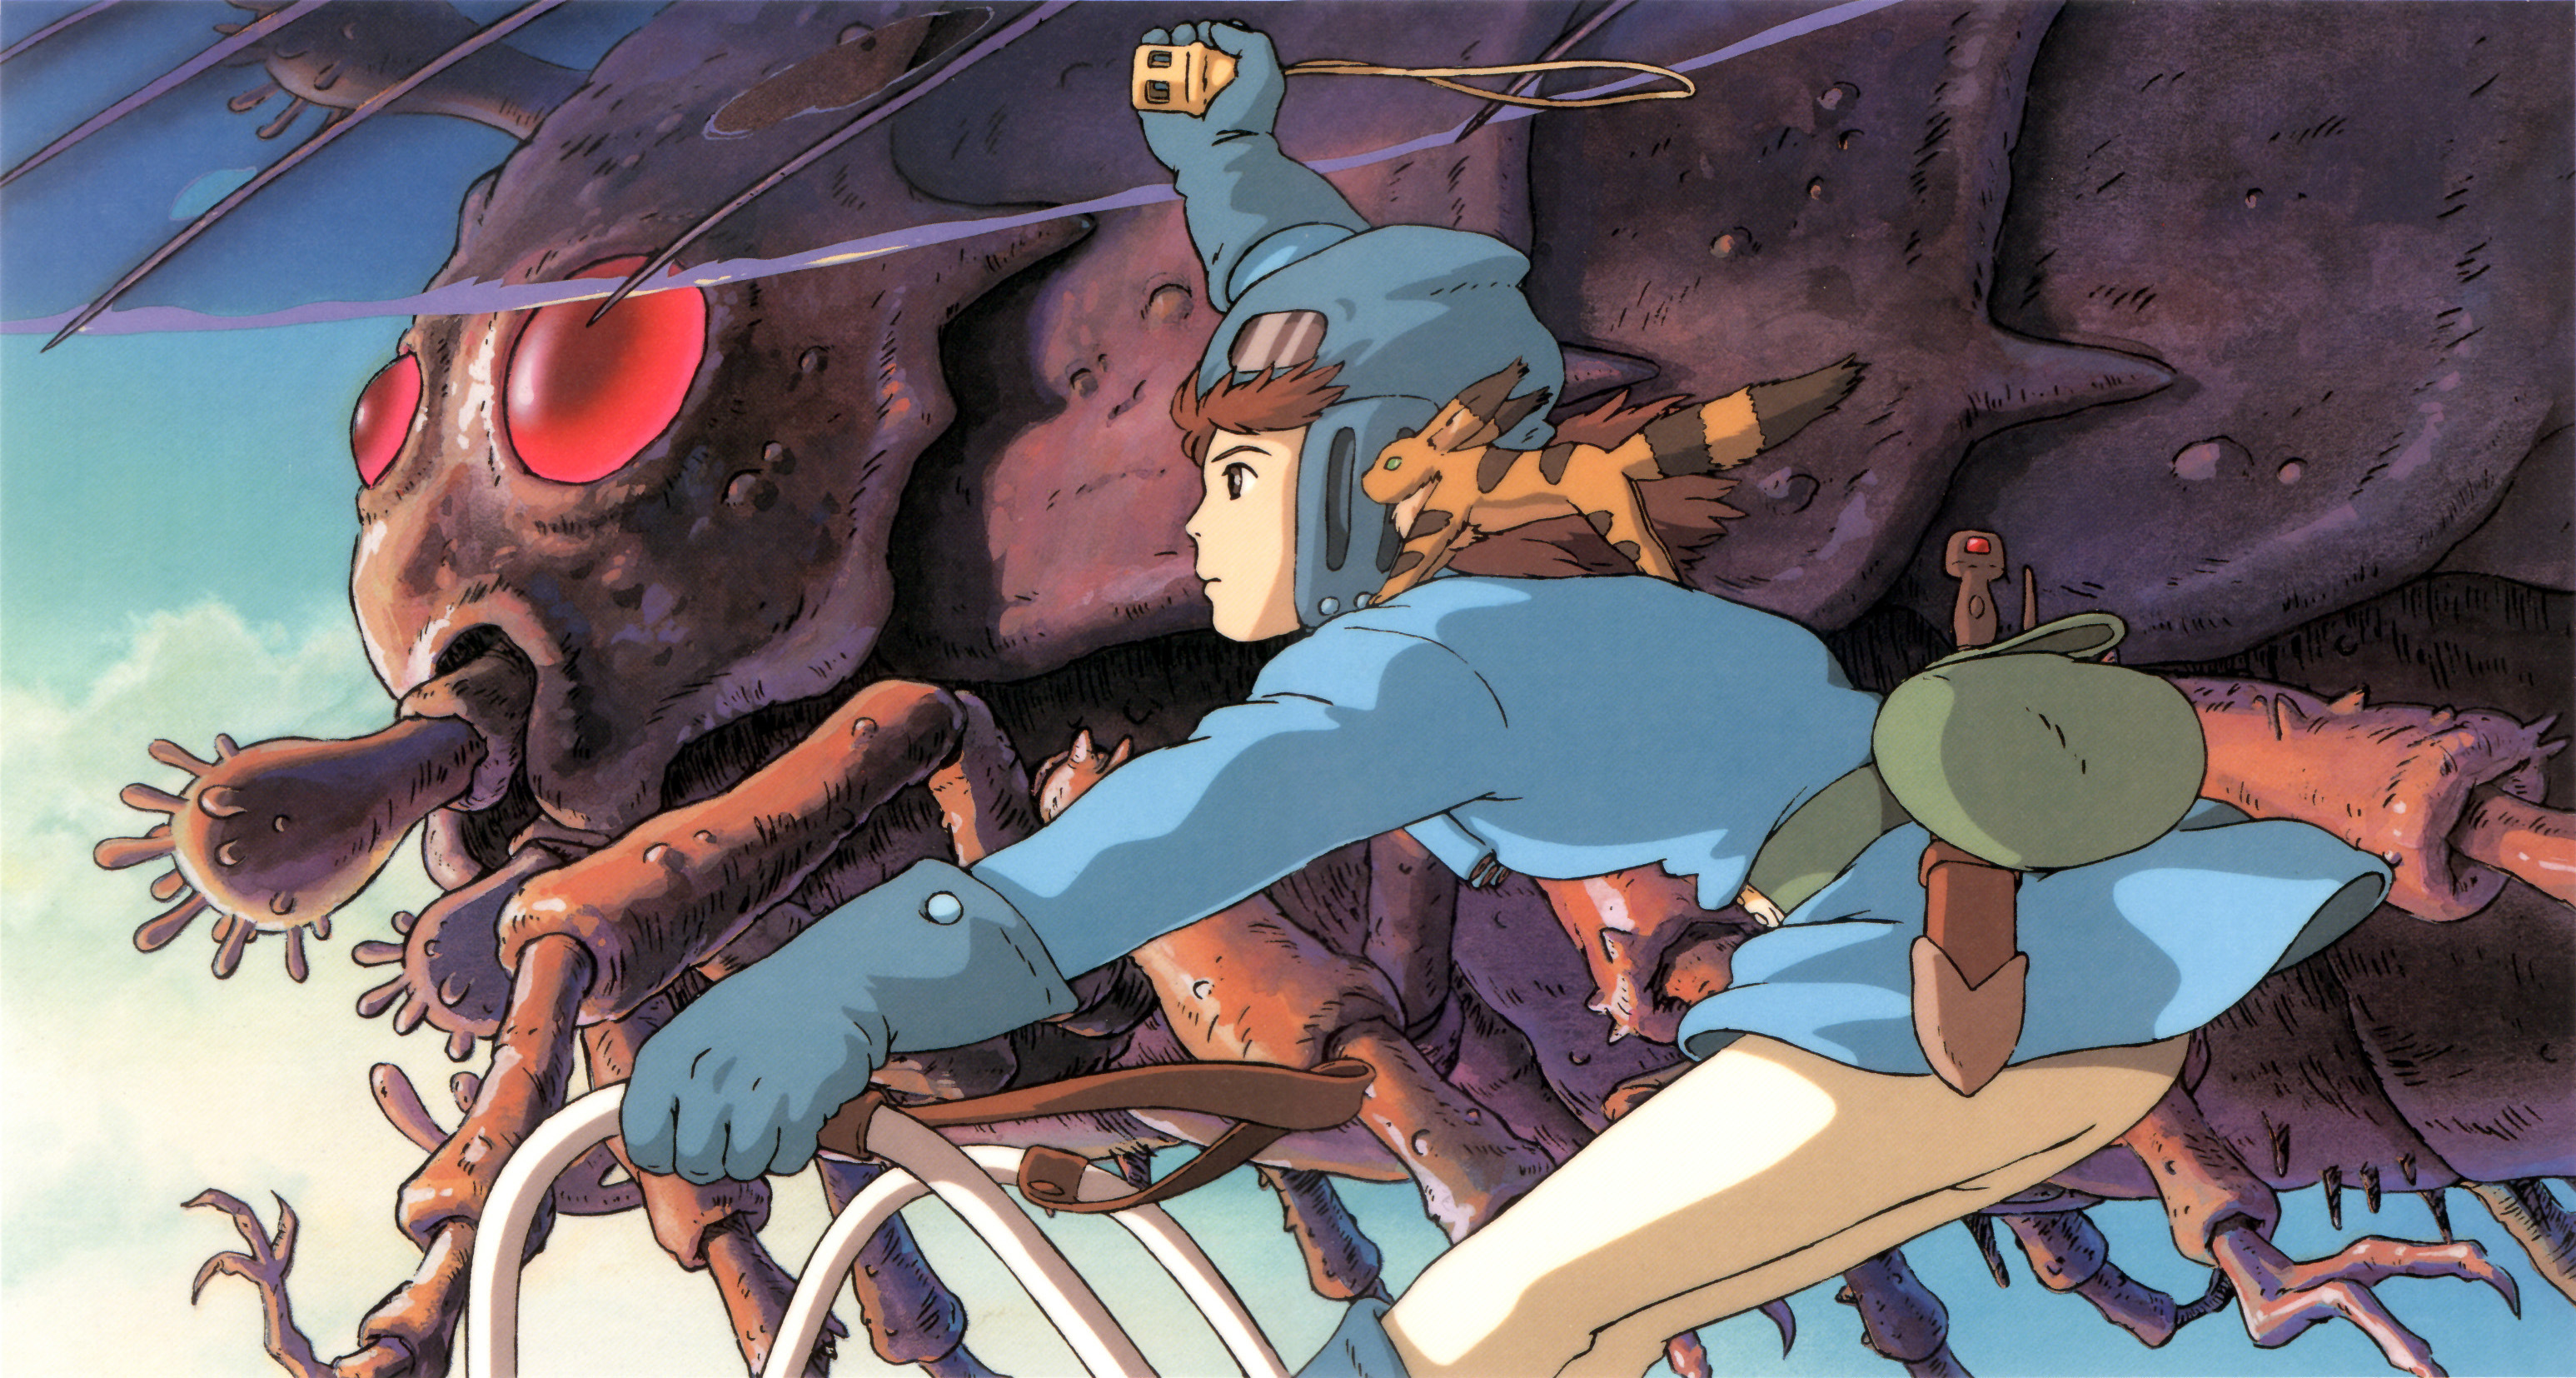 image NFF 2017: Nausicaä of the valley of the wind